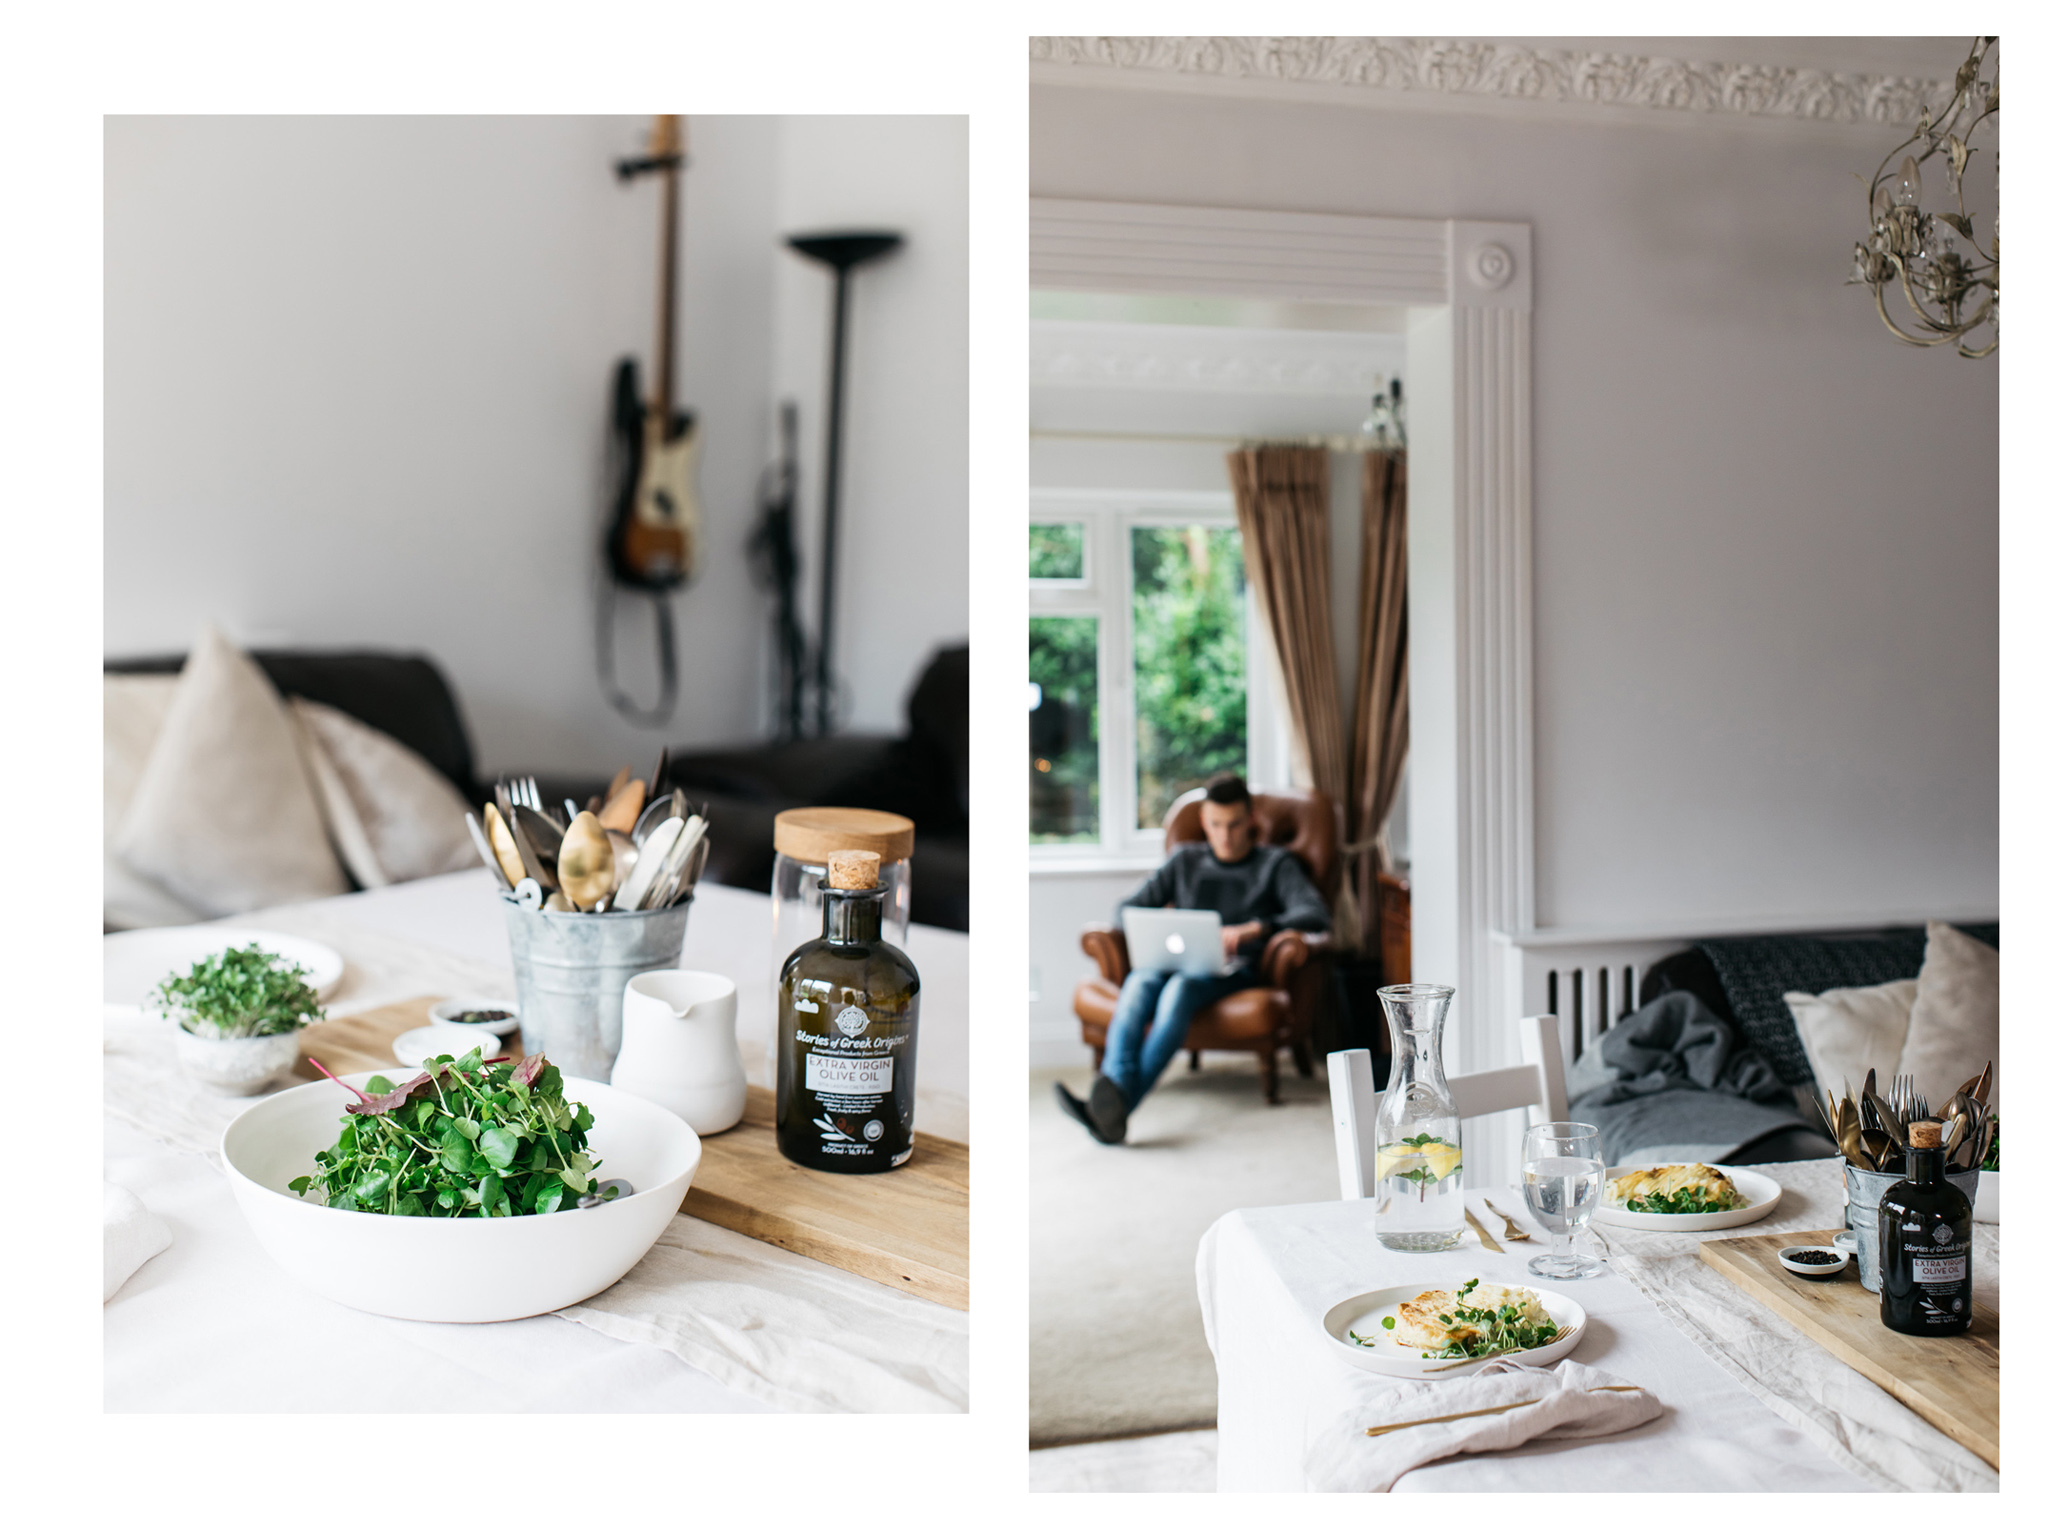 Lifestyle food photography for Gourmade by Emma Croman